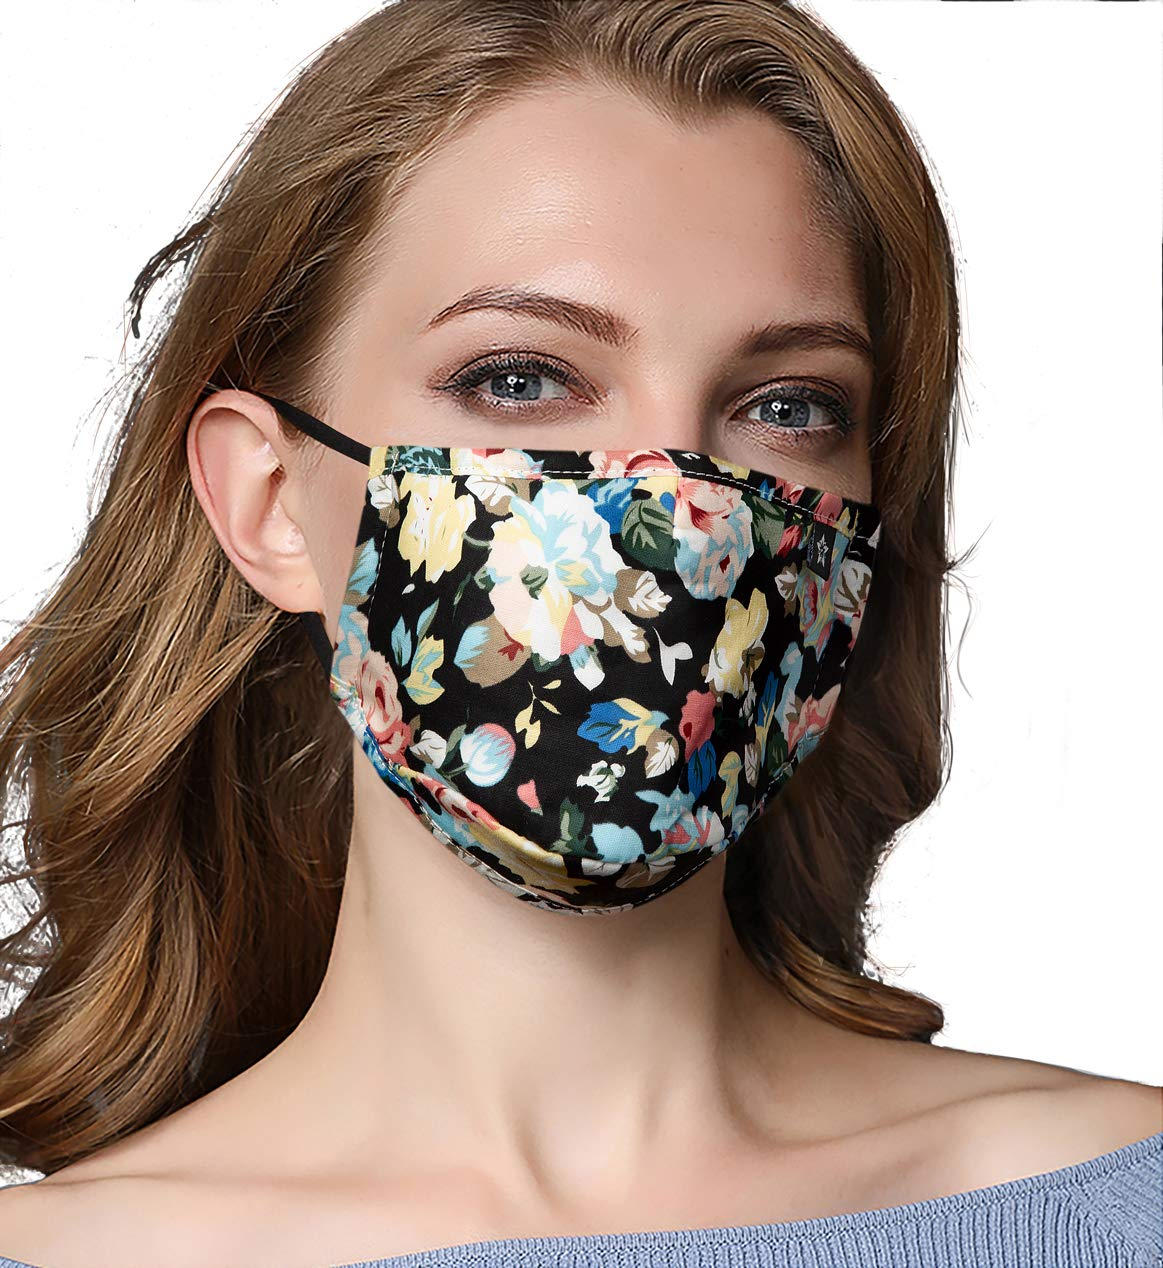 Washeable Reusable Mouth Mask Cotton Anti Dust Half Face Mouth Mask for Men Women Dustproof With Adjustable Ear Loops by YASHIGE